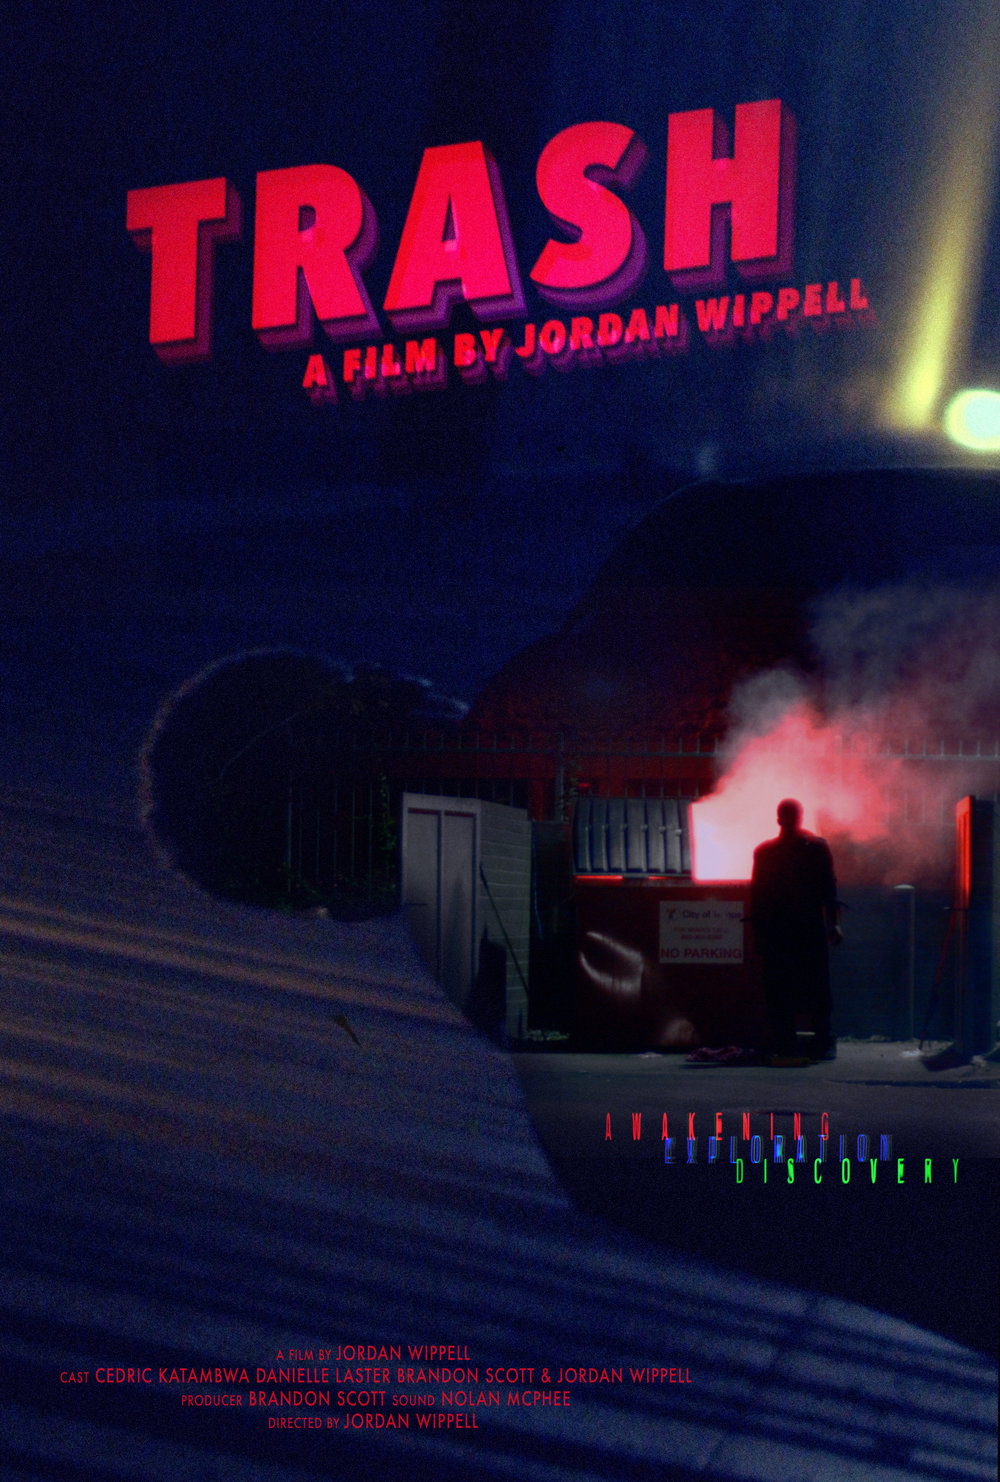 Trash (2016) - Trash, an official selection to Arizona Sci-Fi and Horror Showcase, displays the journey across the real America through the most naive of eyes.